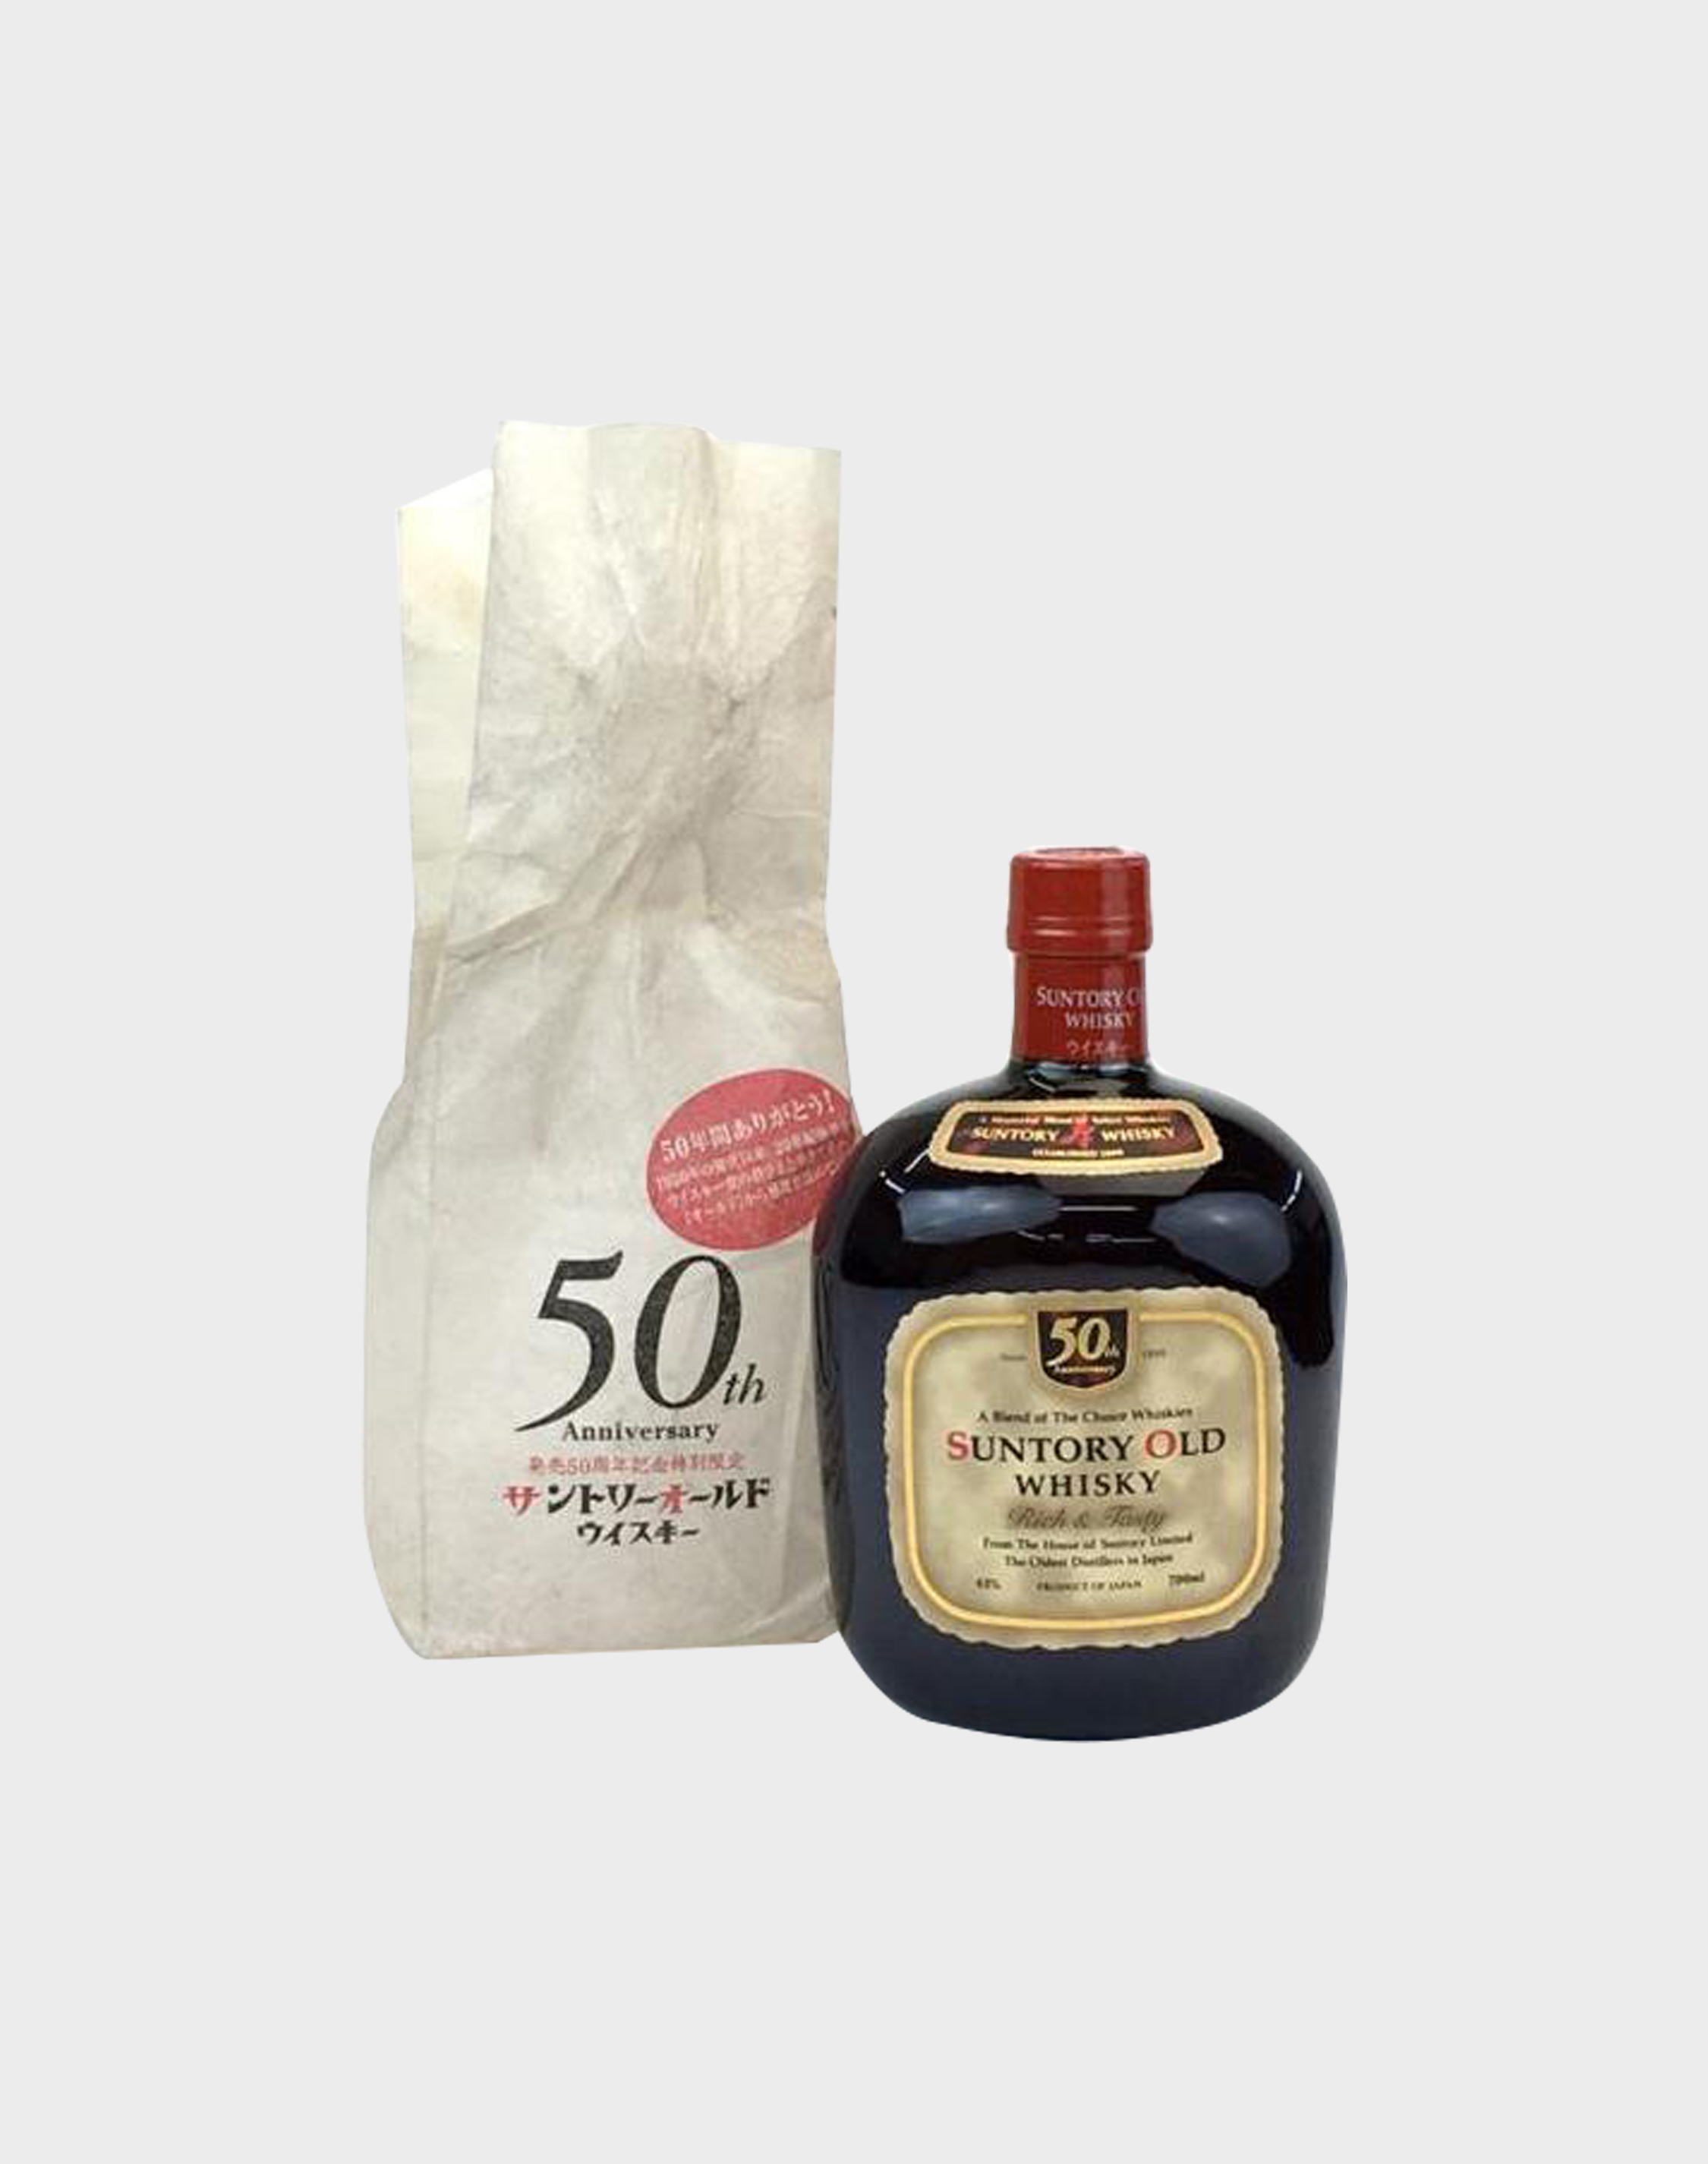 suntory old whisky 50th anniversary japanese whisky dekant. Black Bedroom Furniture Sets. Home Design Ideas